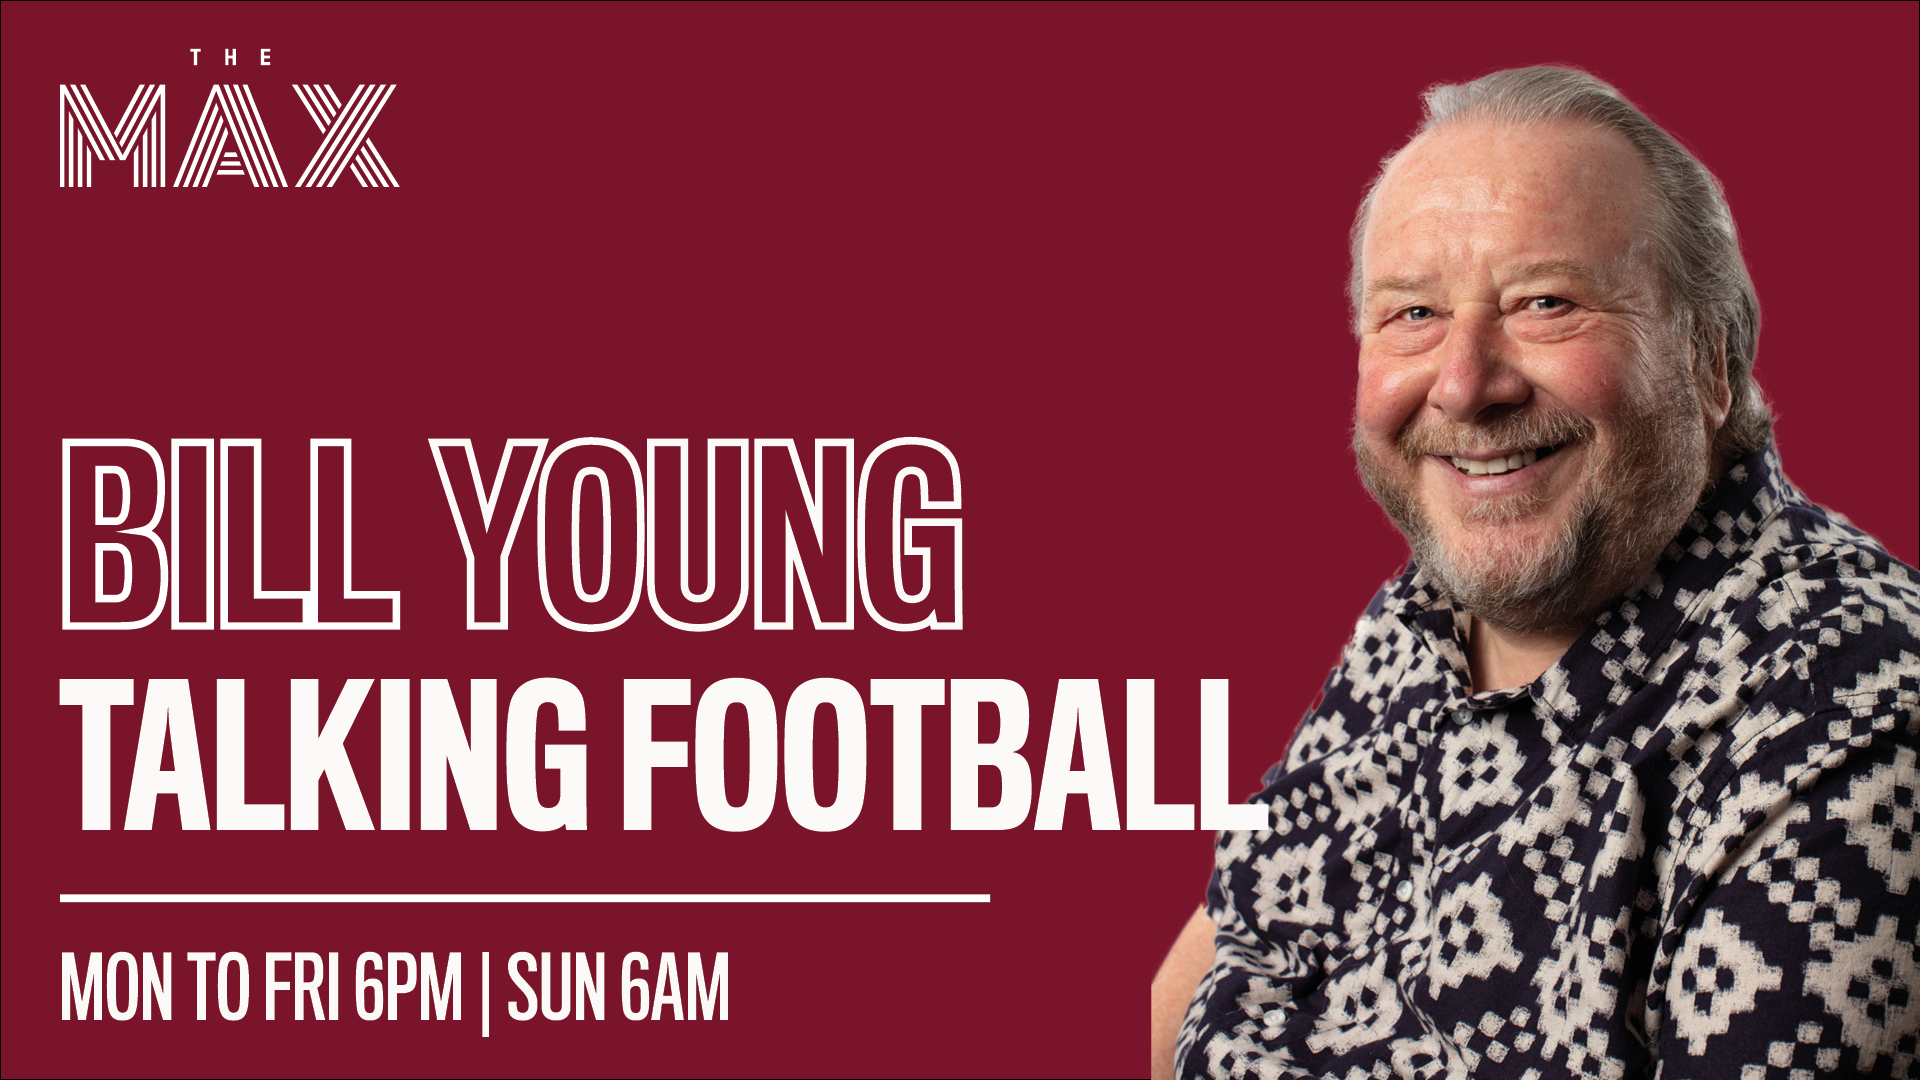 Talking Football with Bill Young - Thursday 13th May